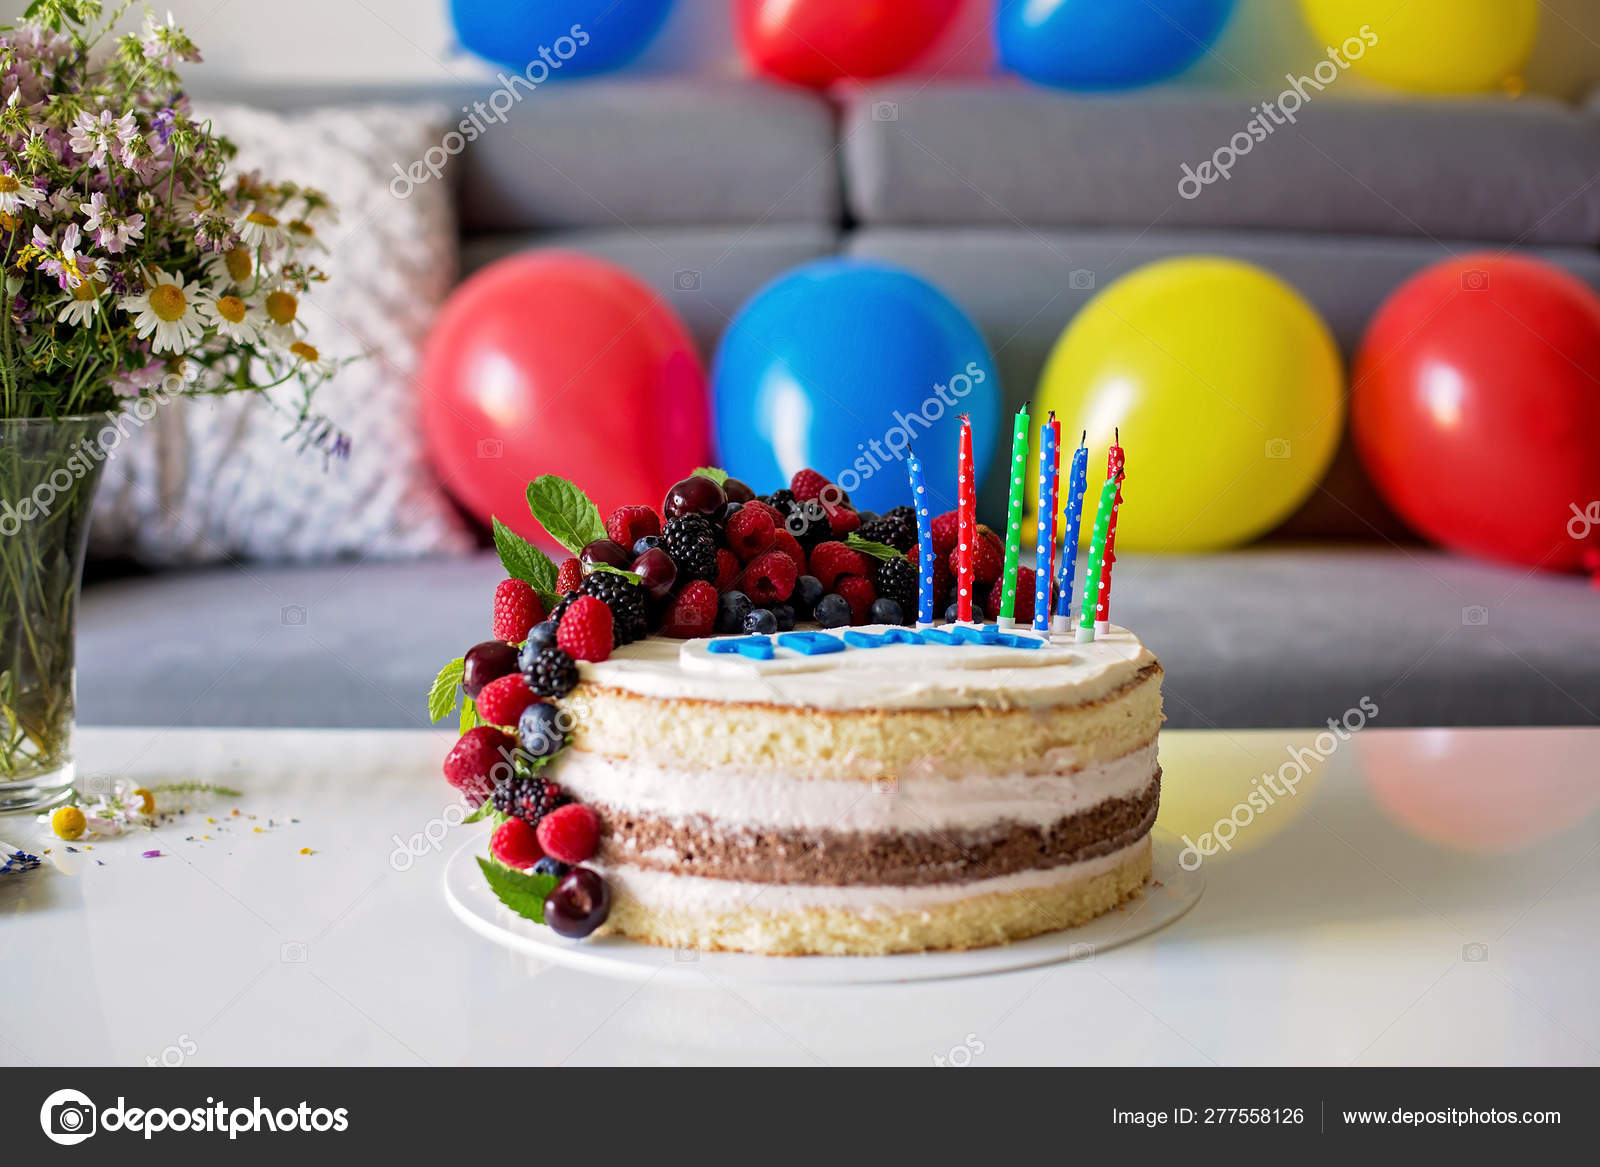 Incredible Homemade Kids Birthday Cake With Lots Of Fruits On Top Cherries Funny Birthday Cards Online Alyptdamsfinfo